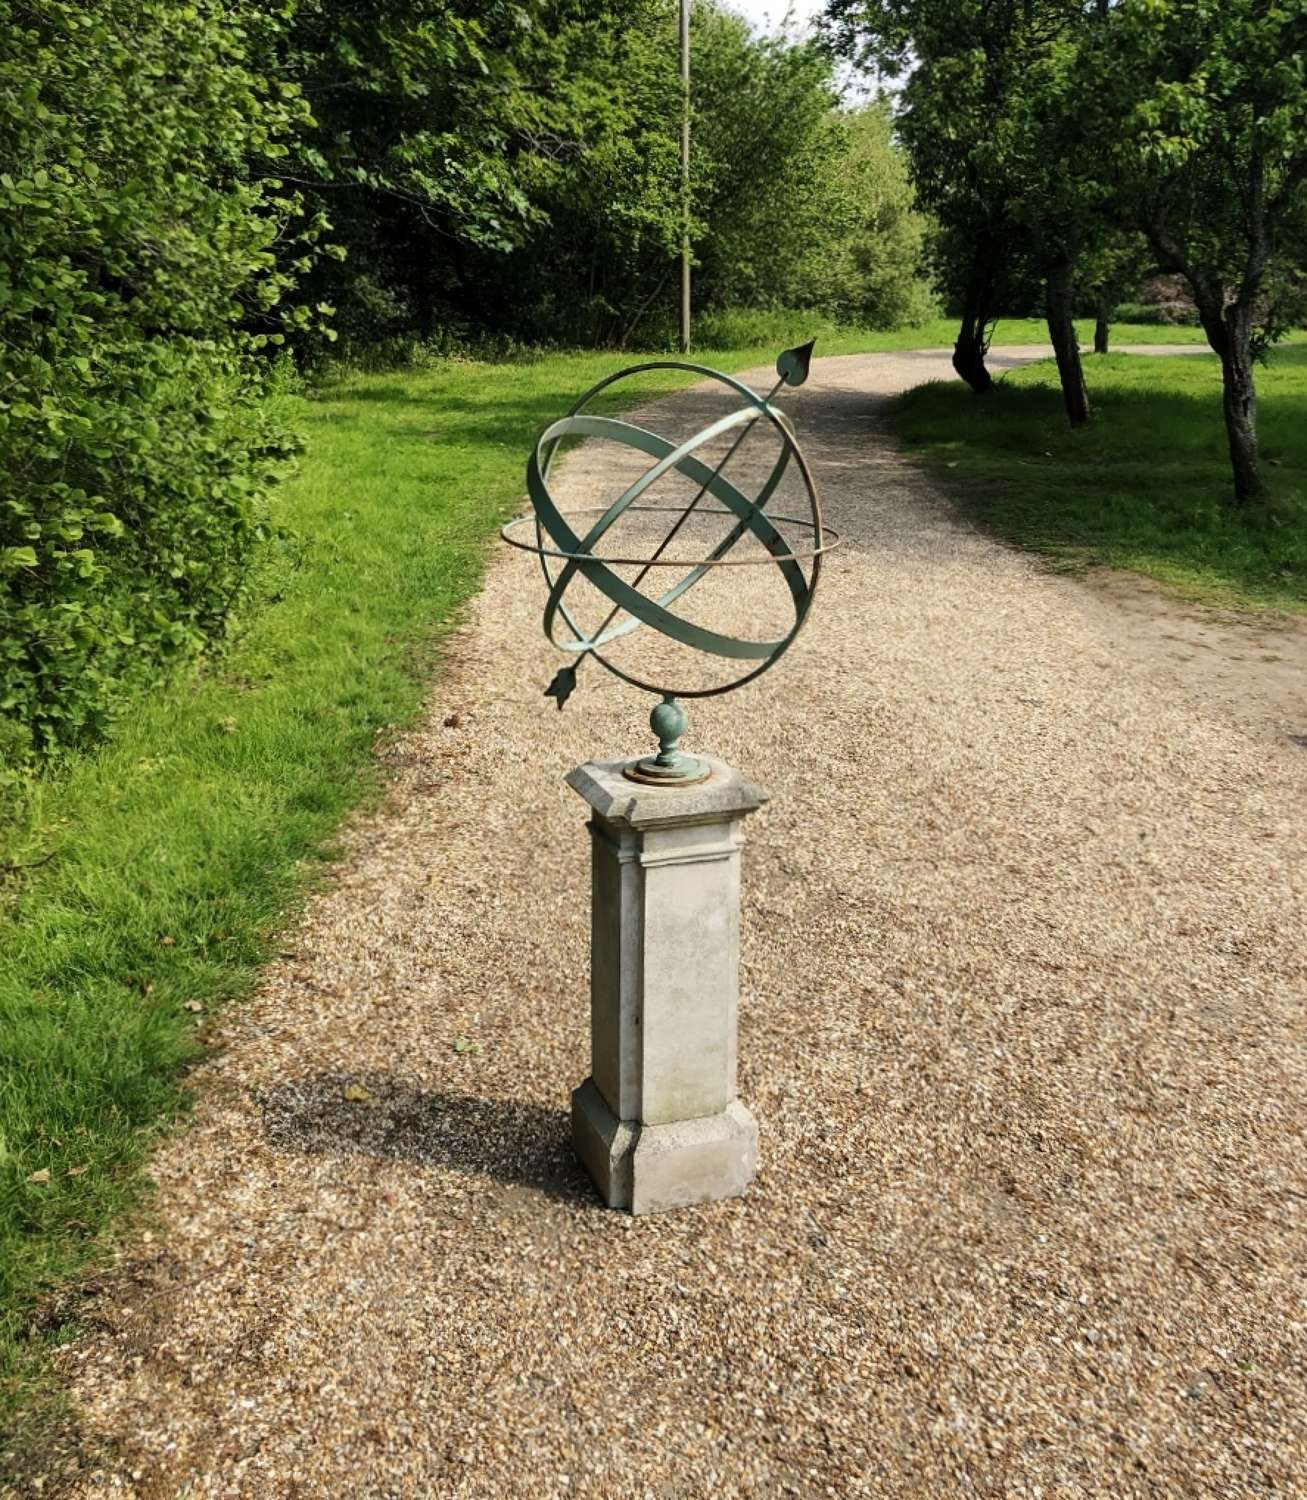 Green Iron Armillary on a Simple Base